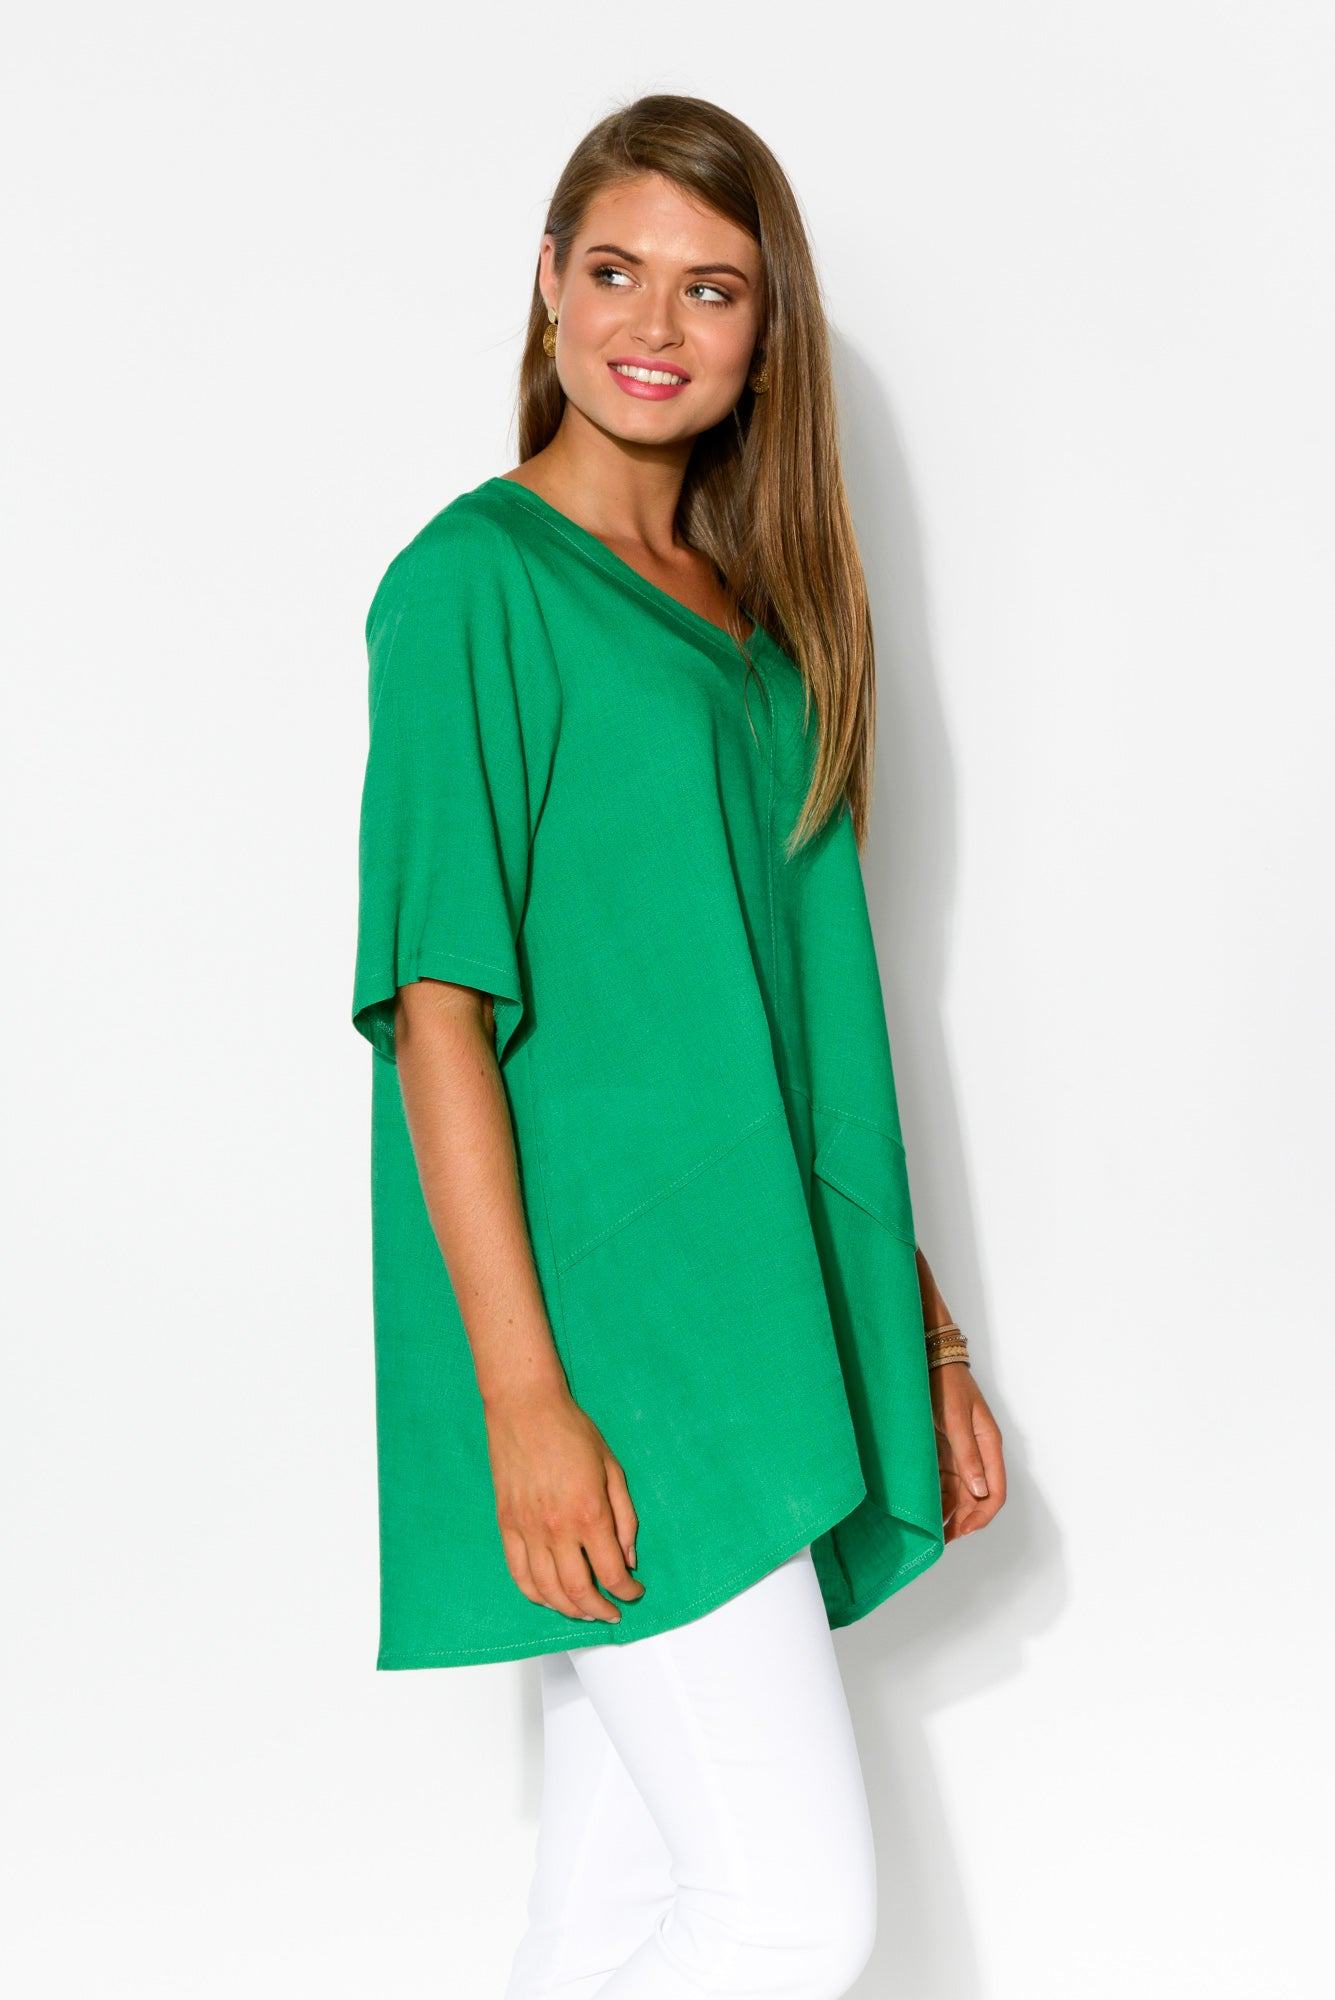 Neptune Green Linen Cotton Top